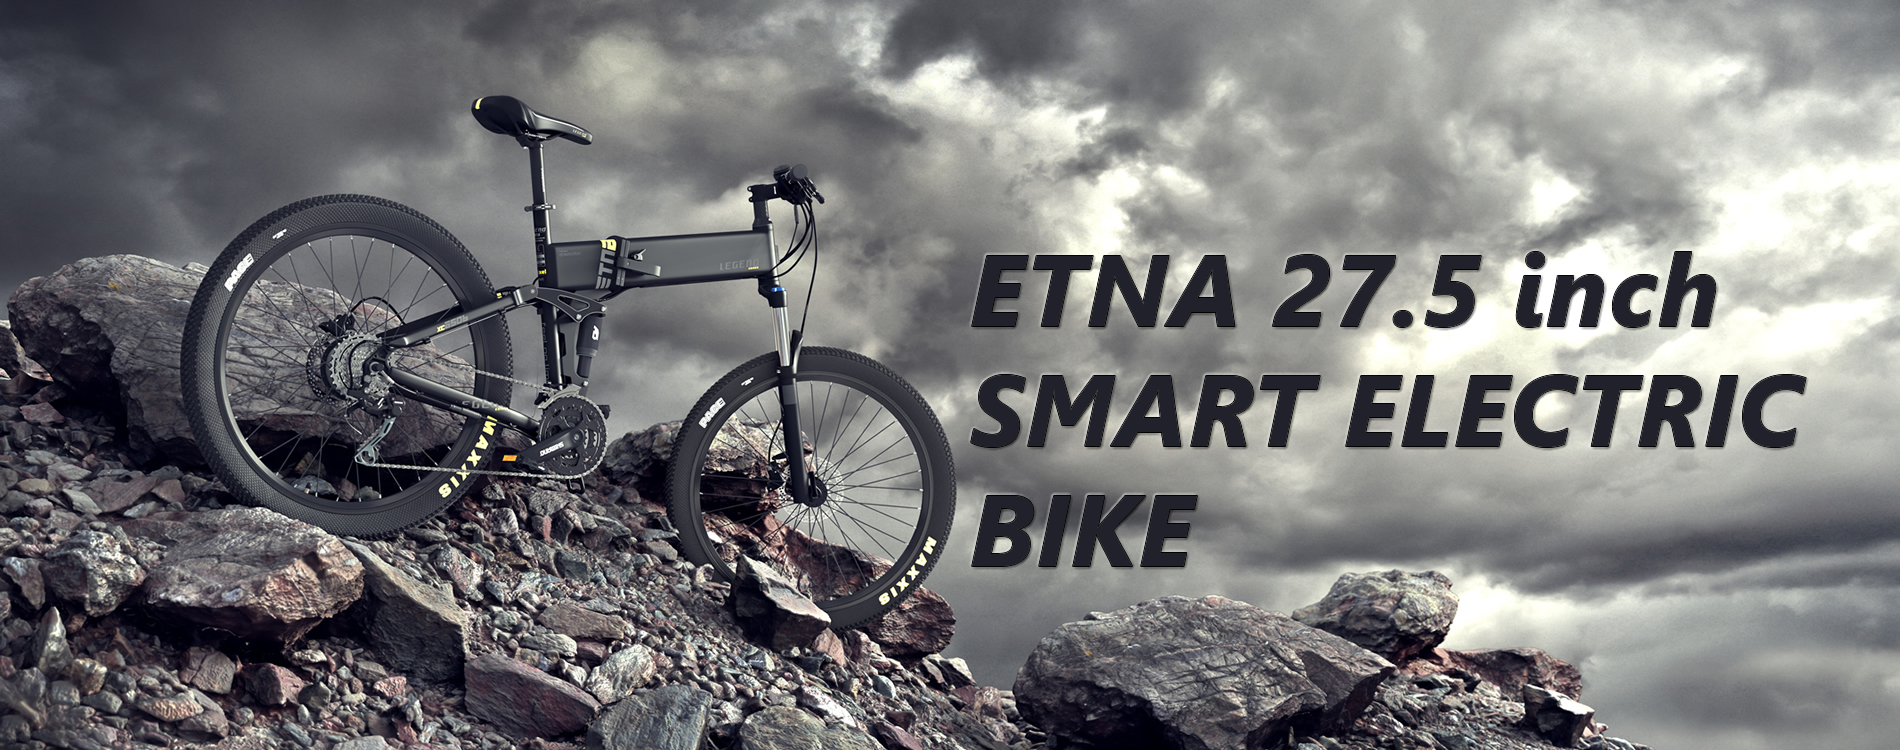 Etna Electric Smart Folding Bike 27.5 inch